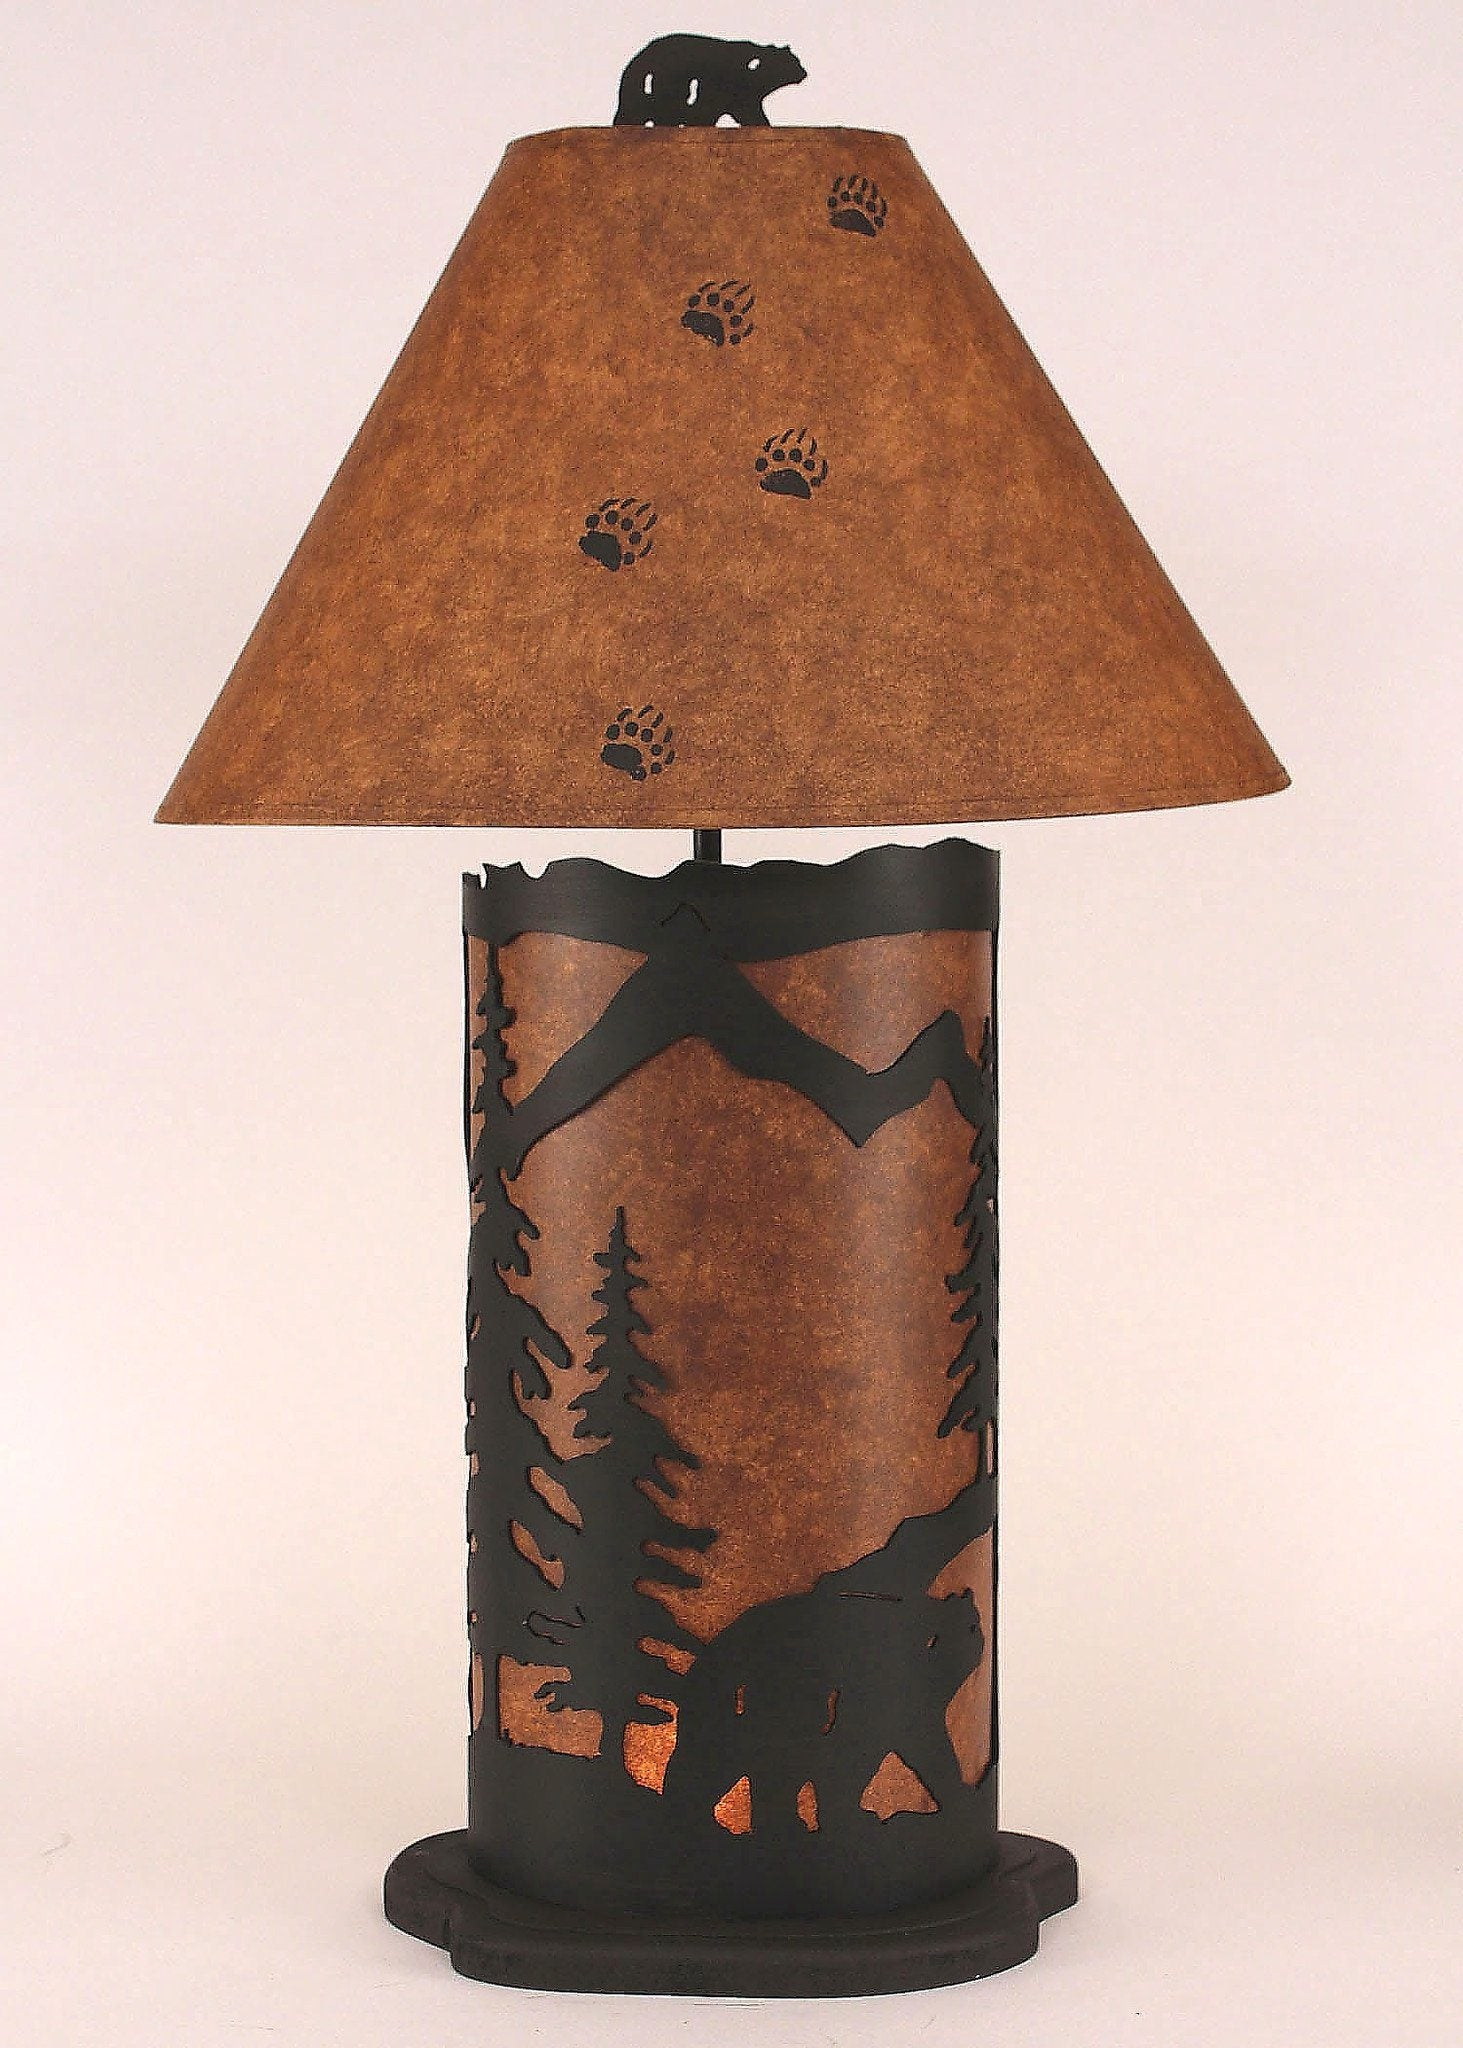 Large Bear Scene Table Lamp in Rustic Brown Finish